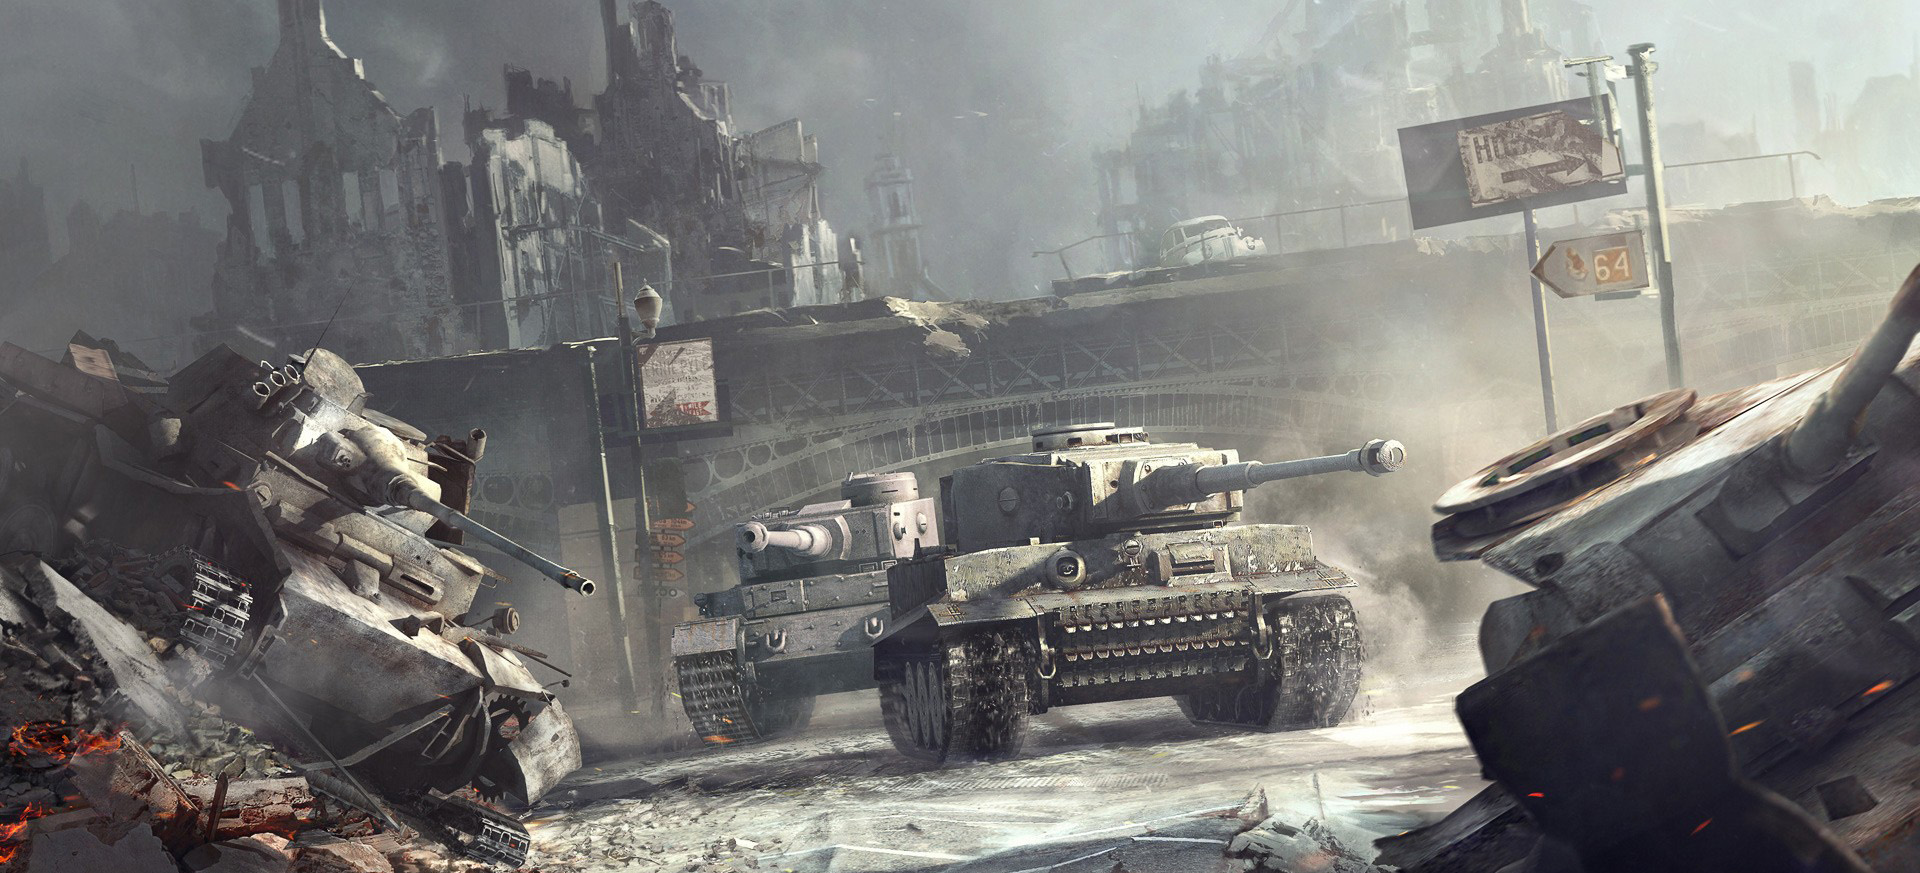 World of Tanks' new Matchmaker update will improve your chances of seeing a different map during your play session - no more playing the same map several times in a row.